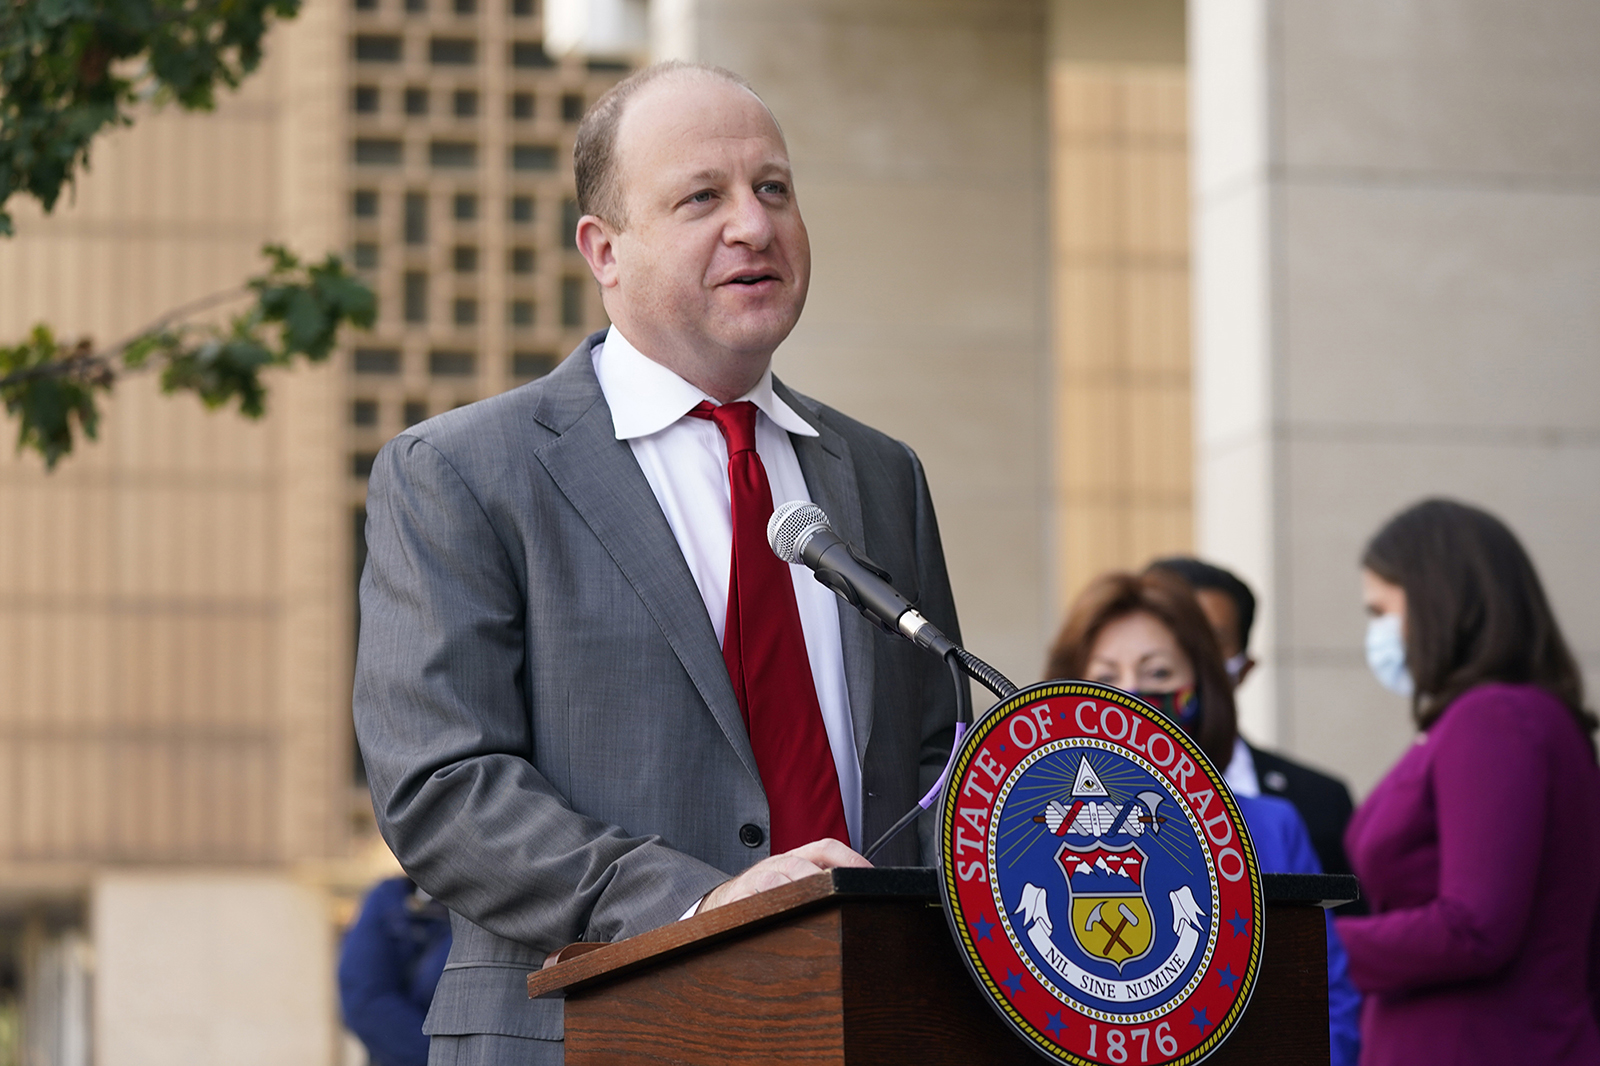 Colorado Governor Jared Polis speaks during a news conference about the the state's efforts to protect the process of casting a vote in the upcoming general election Thursday, Oct. 15, in downtown Denver.